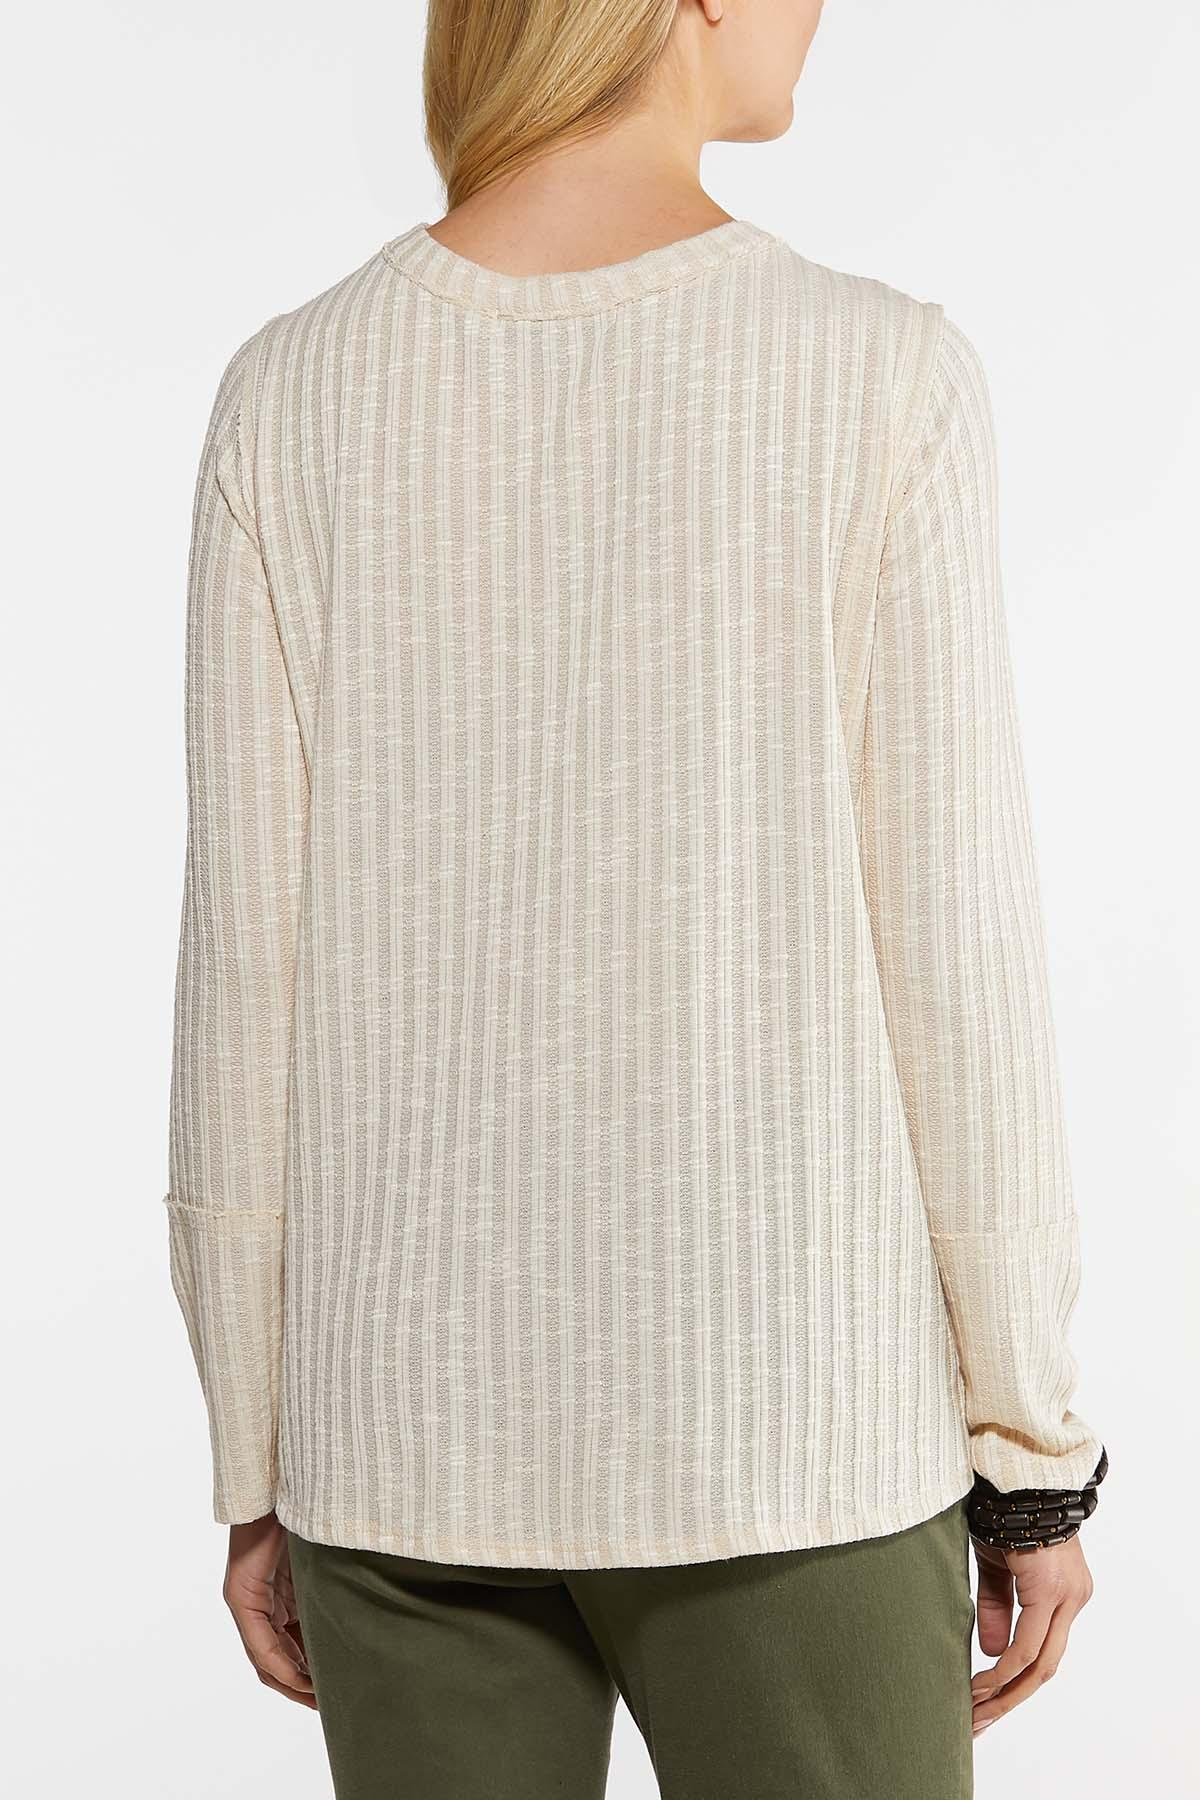 Plus Size Ribbed Button Down Top (Item #44123277)